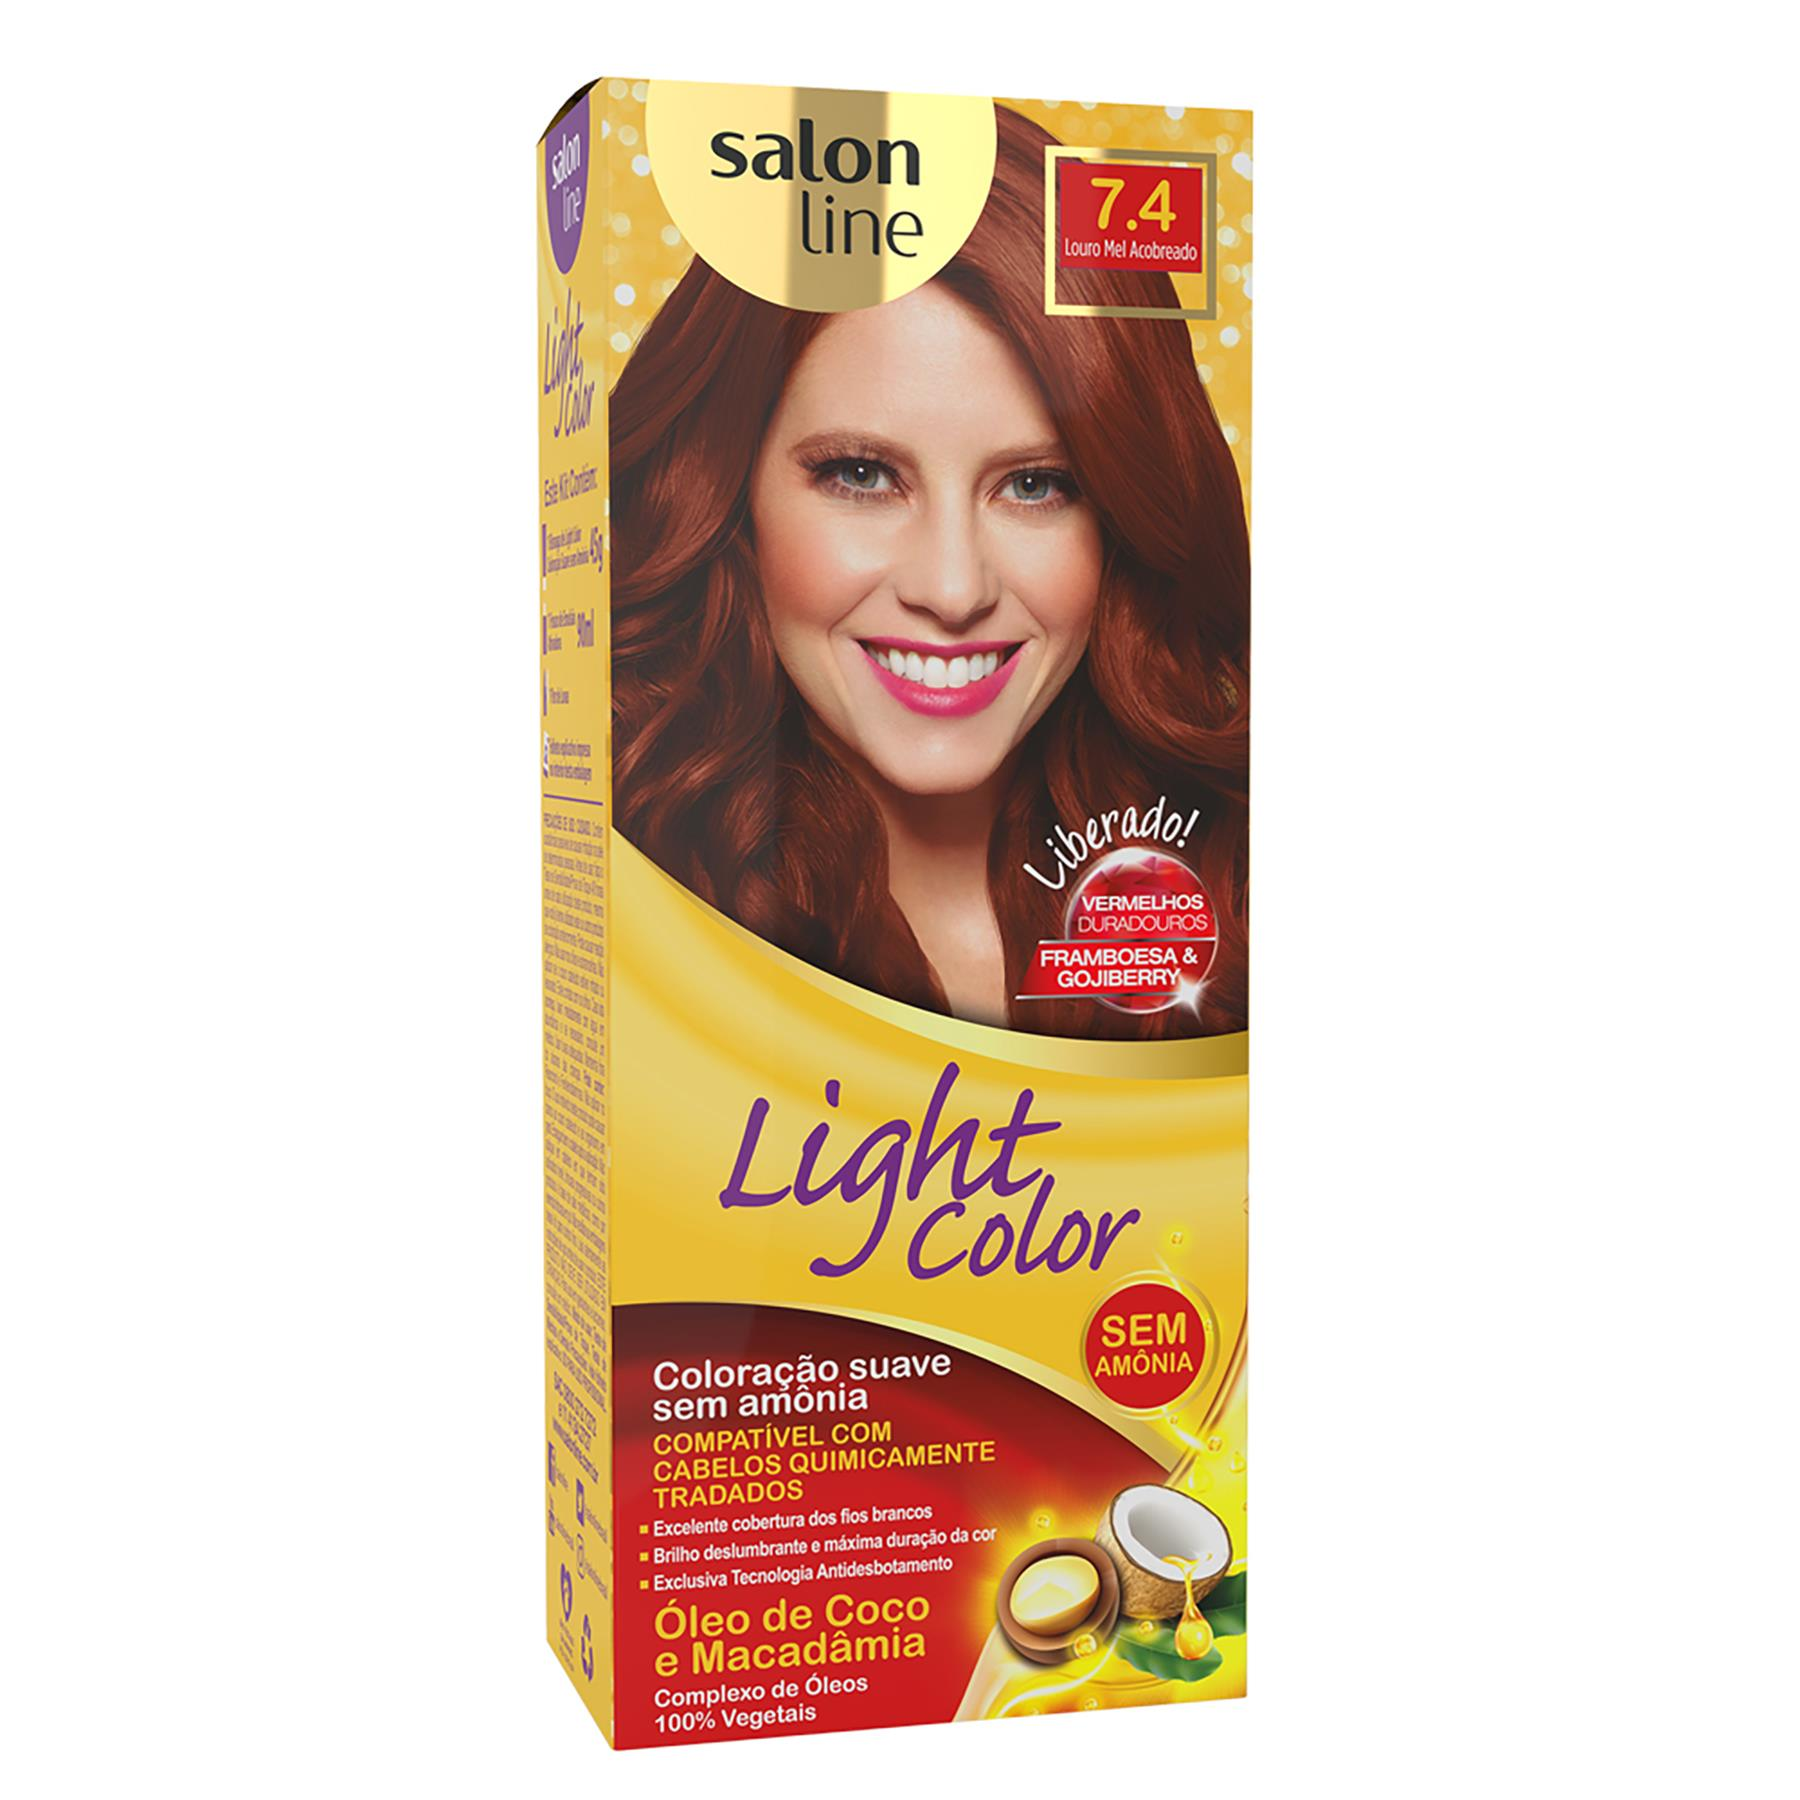 COLORAÇÃO LOURO MEL ACOBREADO 7.4 - LIGHT COLOR SALON LINE